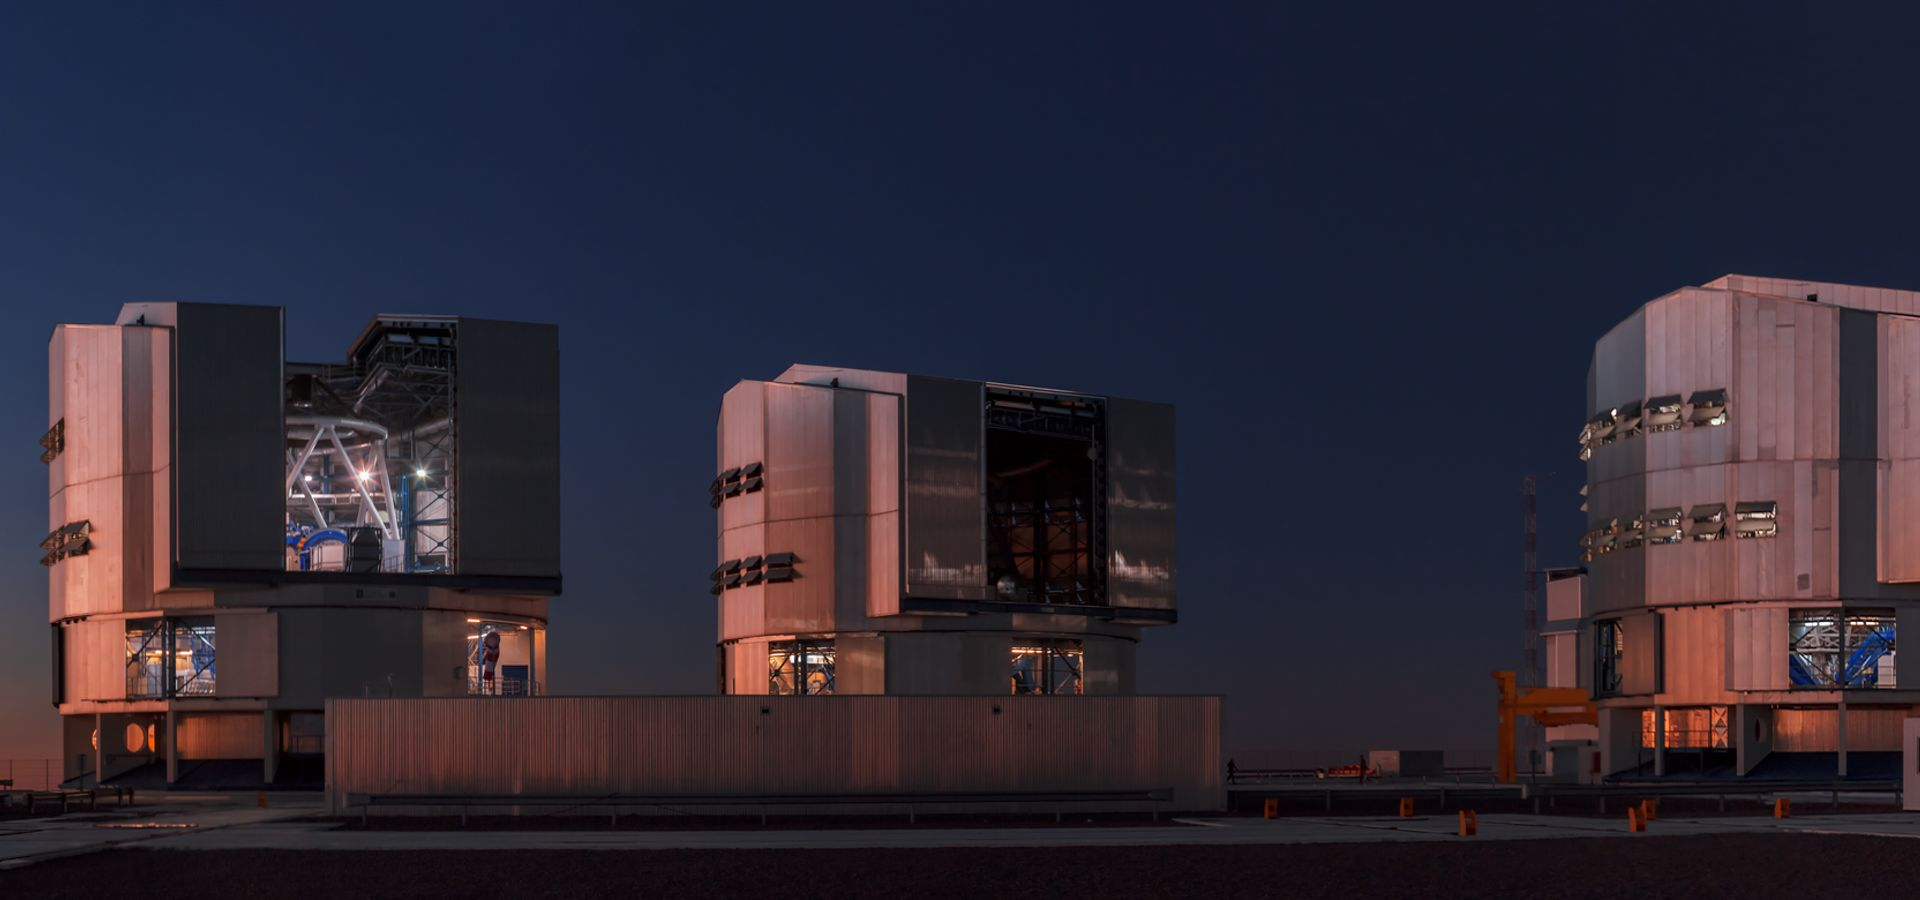 How Productive is the Very Large Telescope?